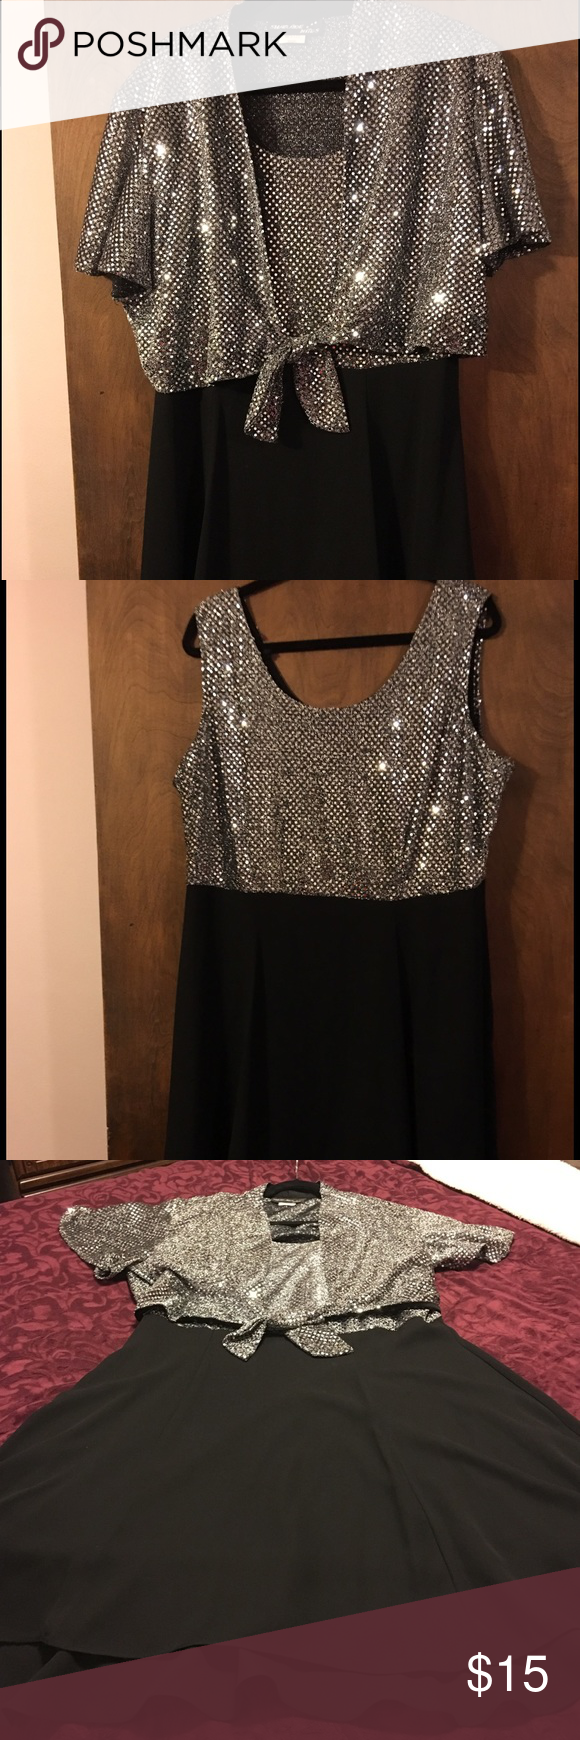 Black and sequined dress Beautiful shimmery party dress. Dress is sleeveless with a short sleeved sequined cover that ties at waist. Dress is size 18 with a layered hem. Falls around knee length on me, I am 5'9. sharade Nites Dresses Midi